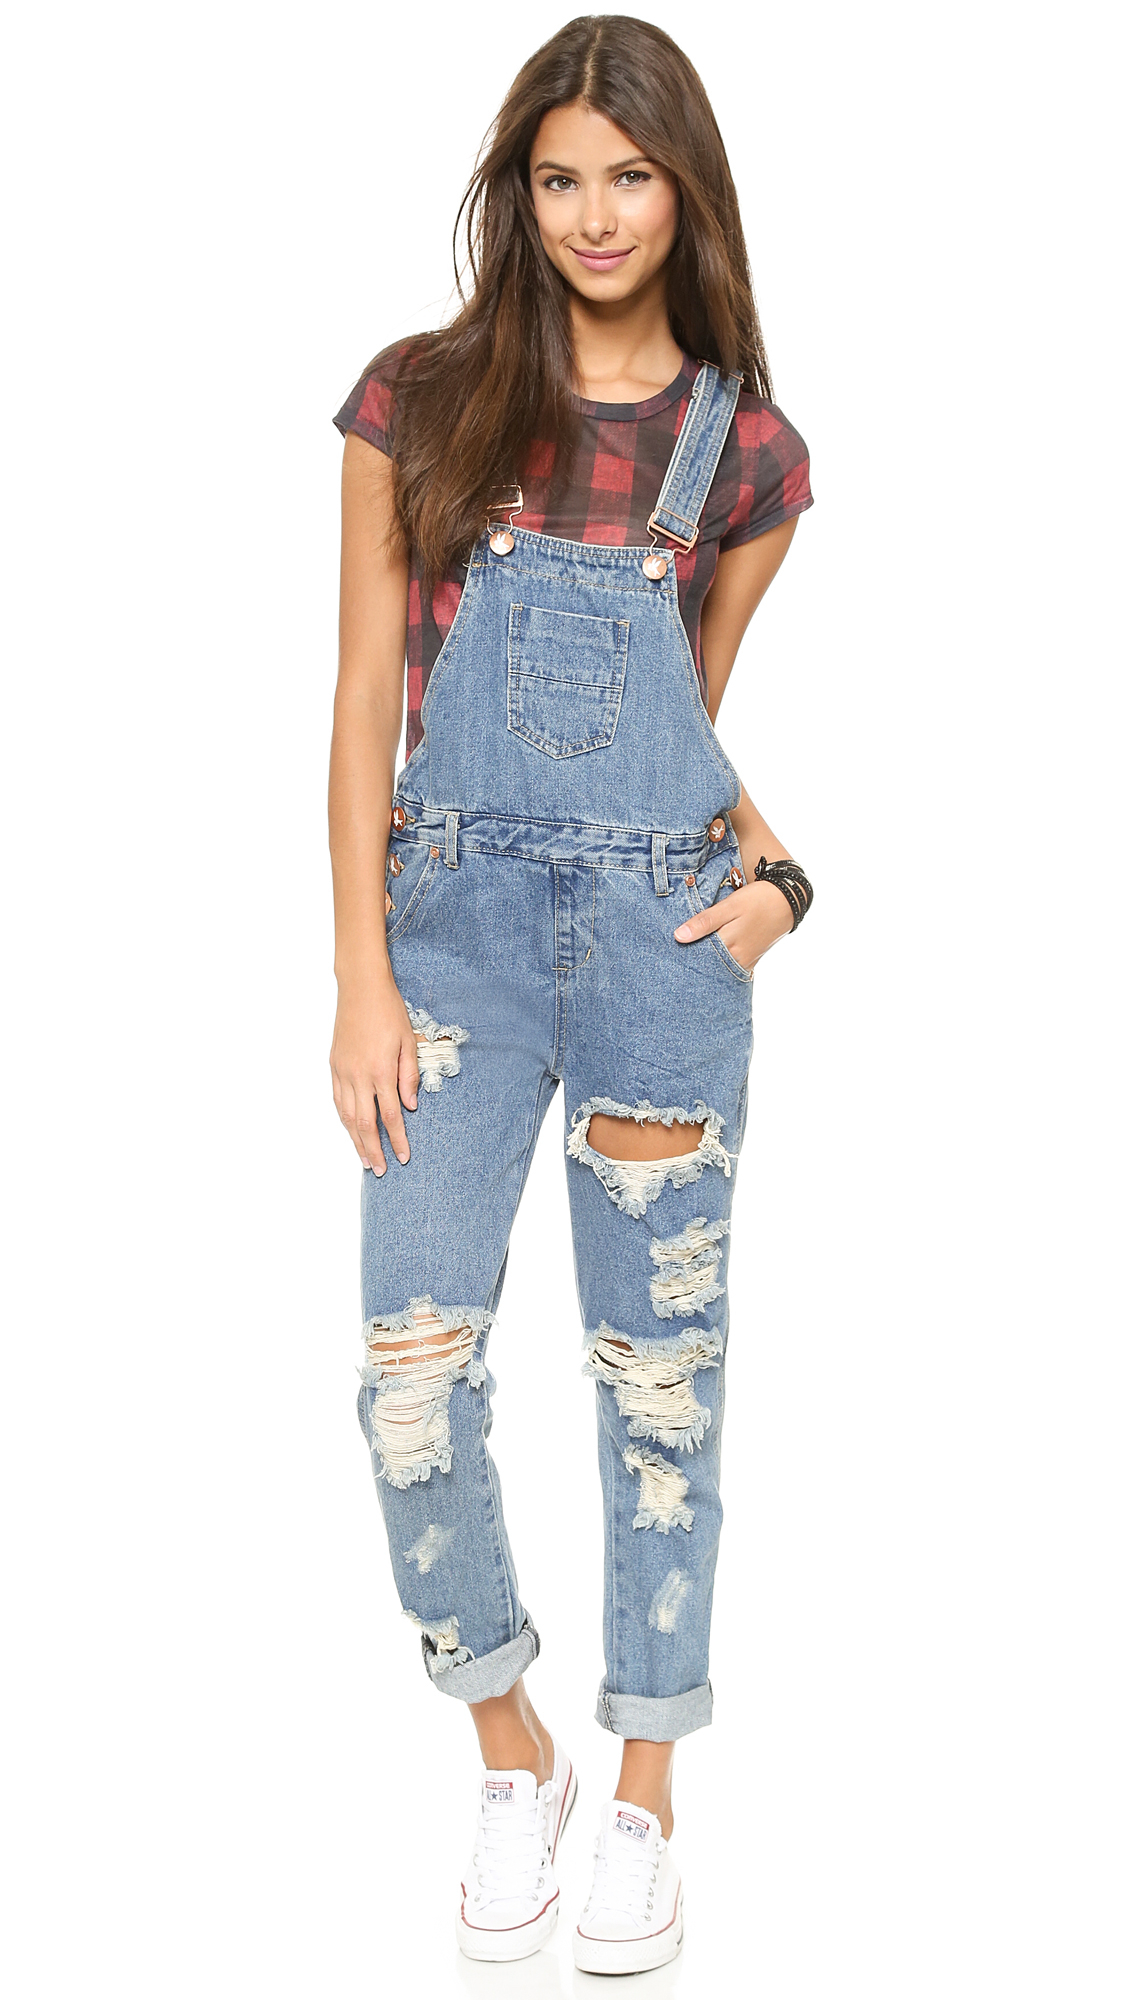 c7e5e175e7a2 Lyst - One Teaspoon Wolf Blue Awesome Overalls - Wolf Blue in Blue